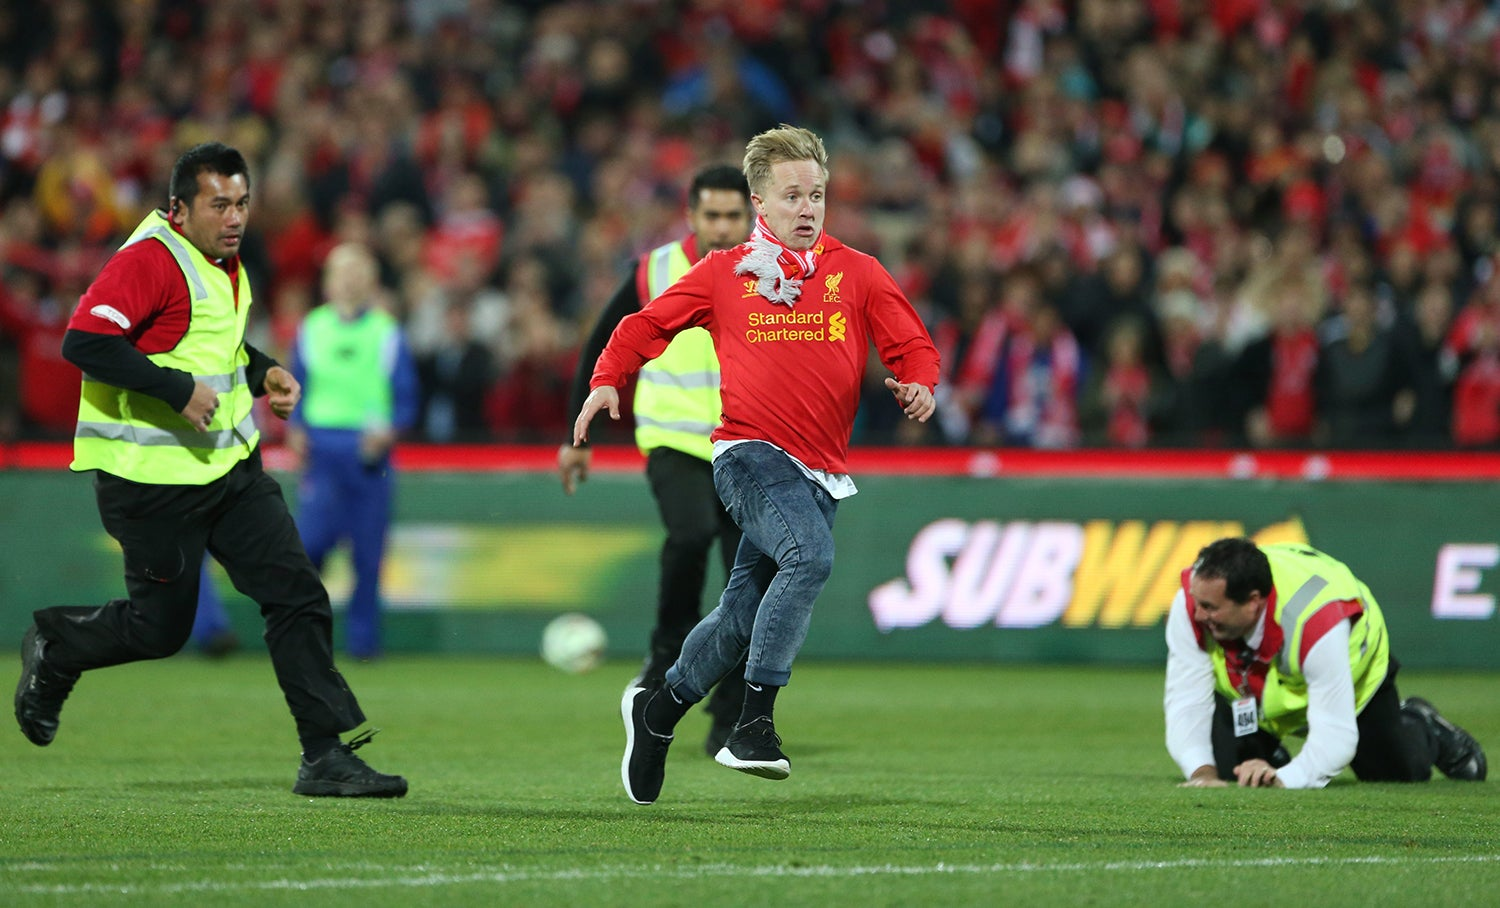 Jogo entre o Adelaide United e o Liverpool em 2015 /Jason O'Brien - Action Images via Reuters